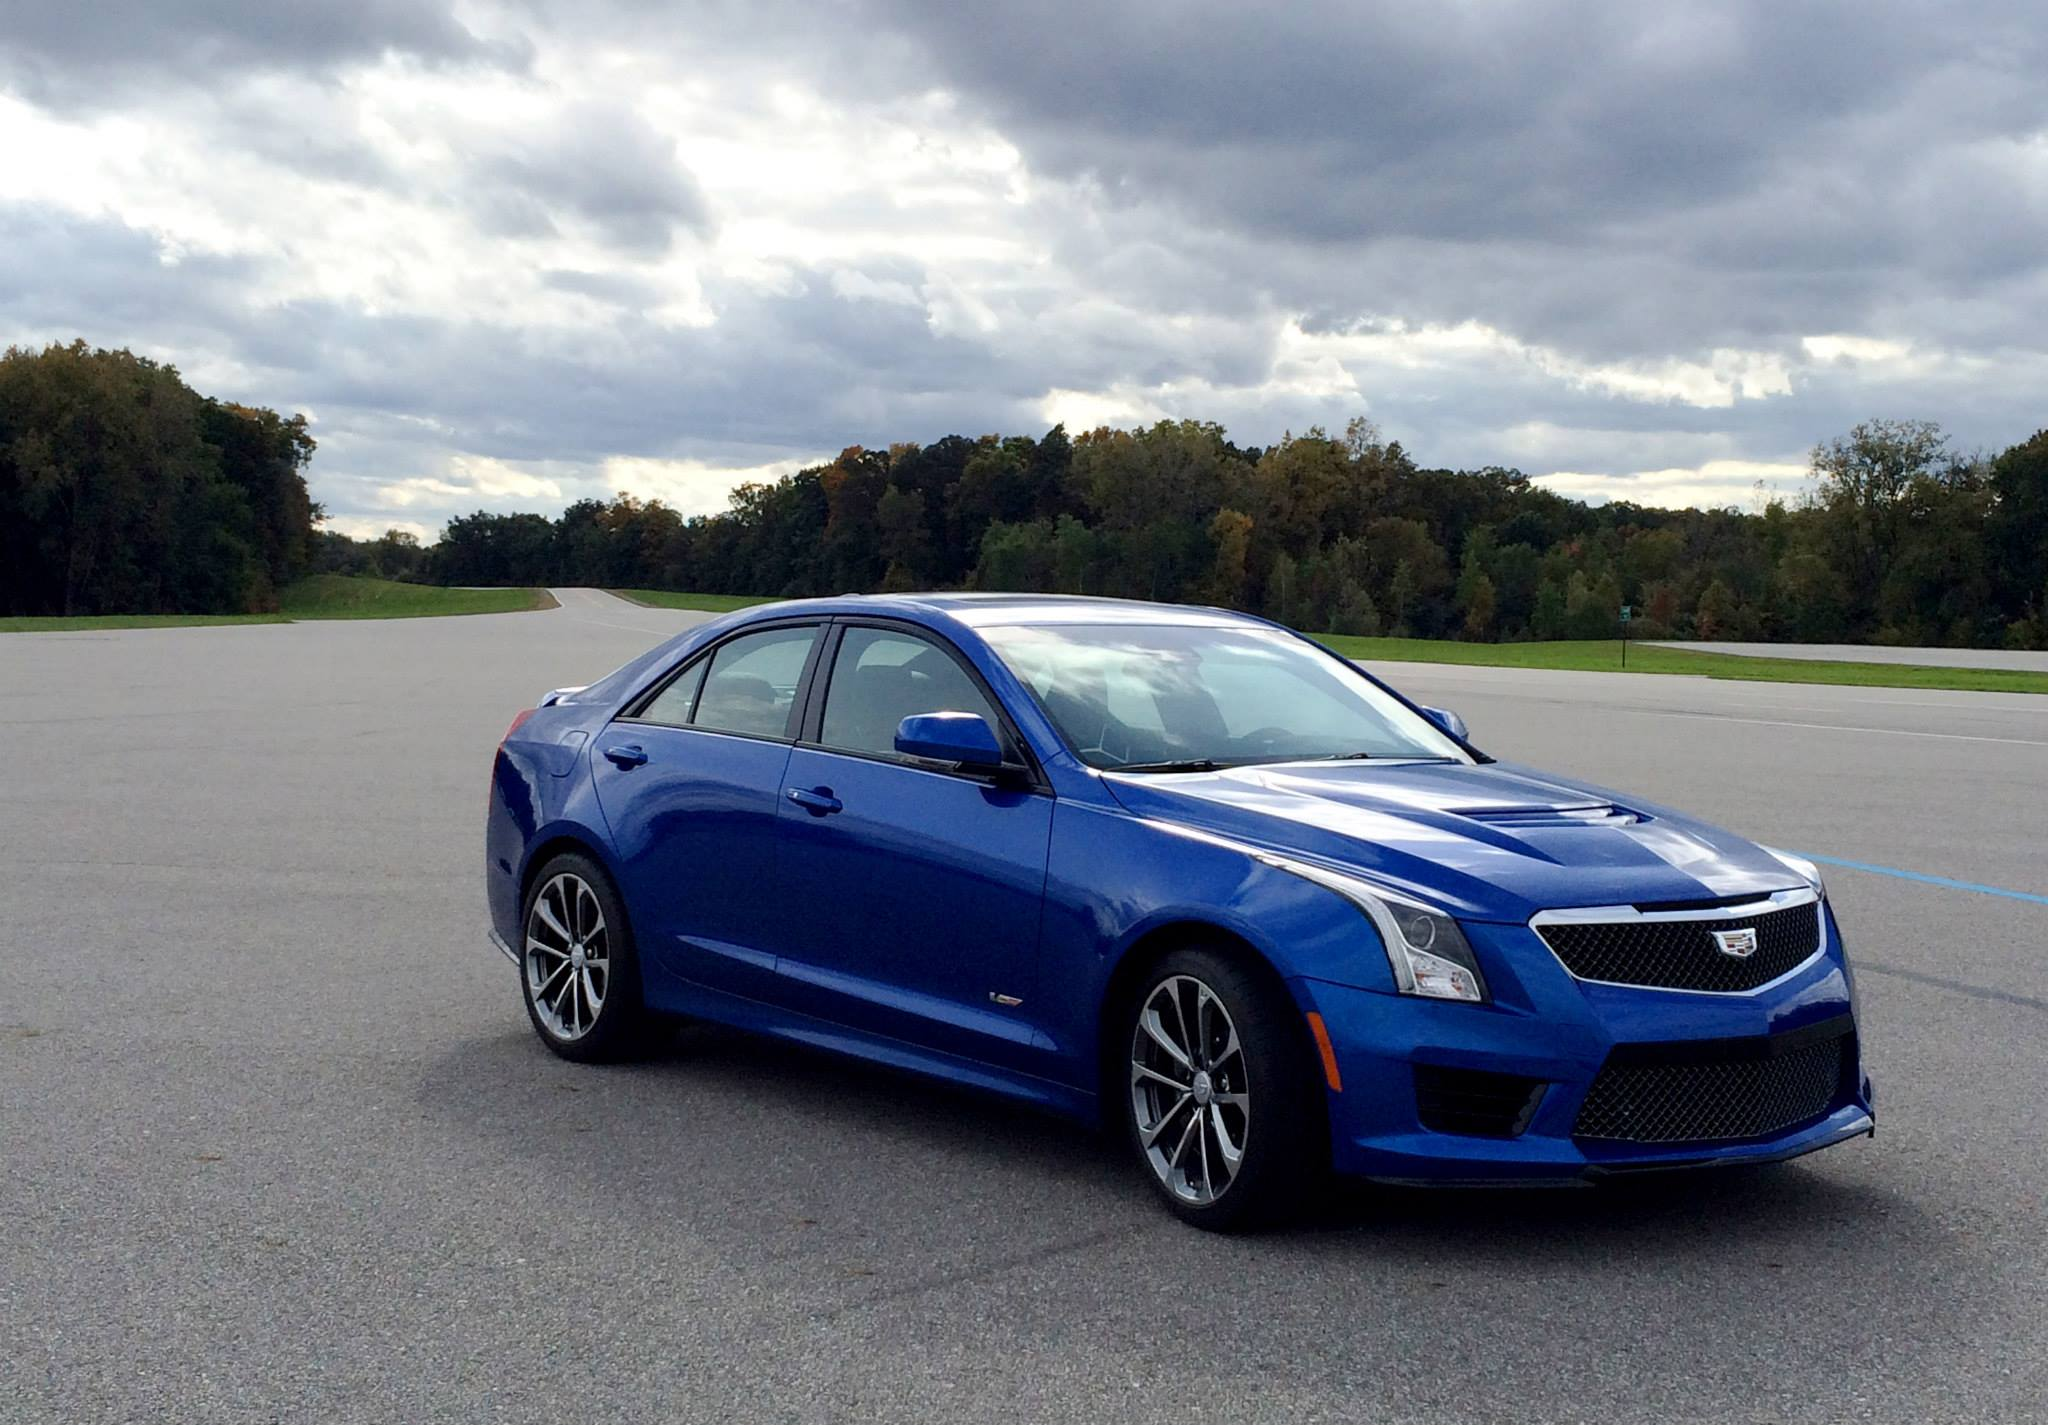 2016 cadillac ats v coupe and sedan officially revealed w 455hp and 6 sp manual. Black Bedroom Furniture Sets. Home Design Ideas